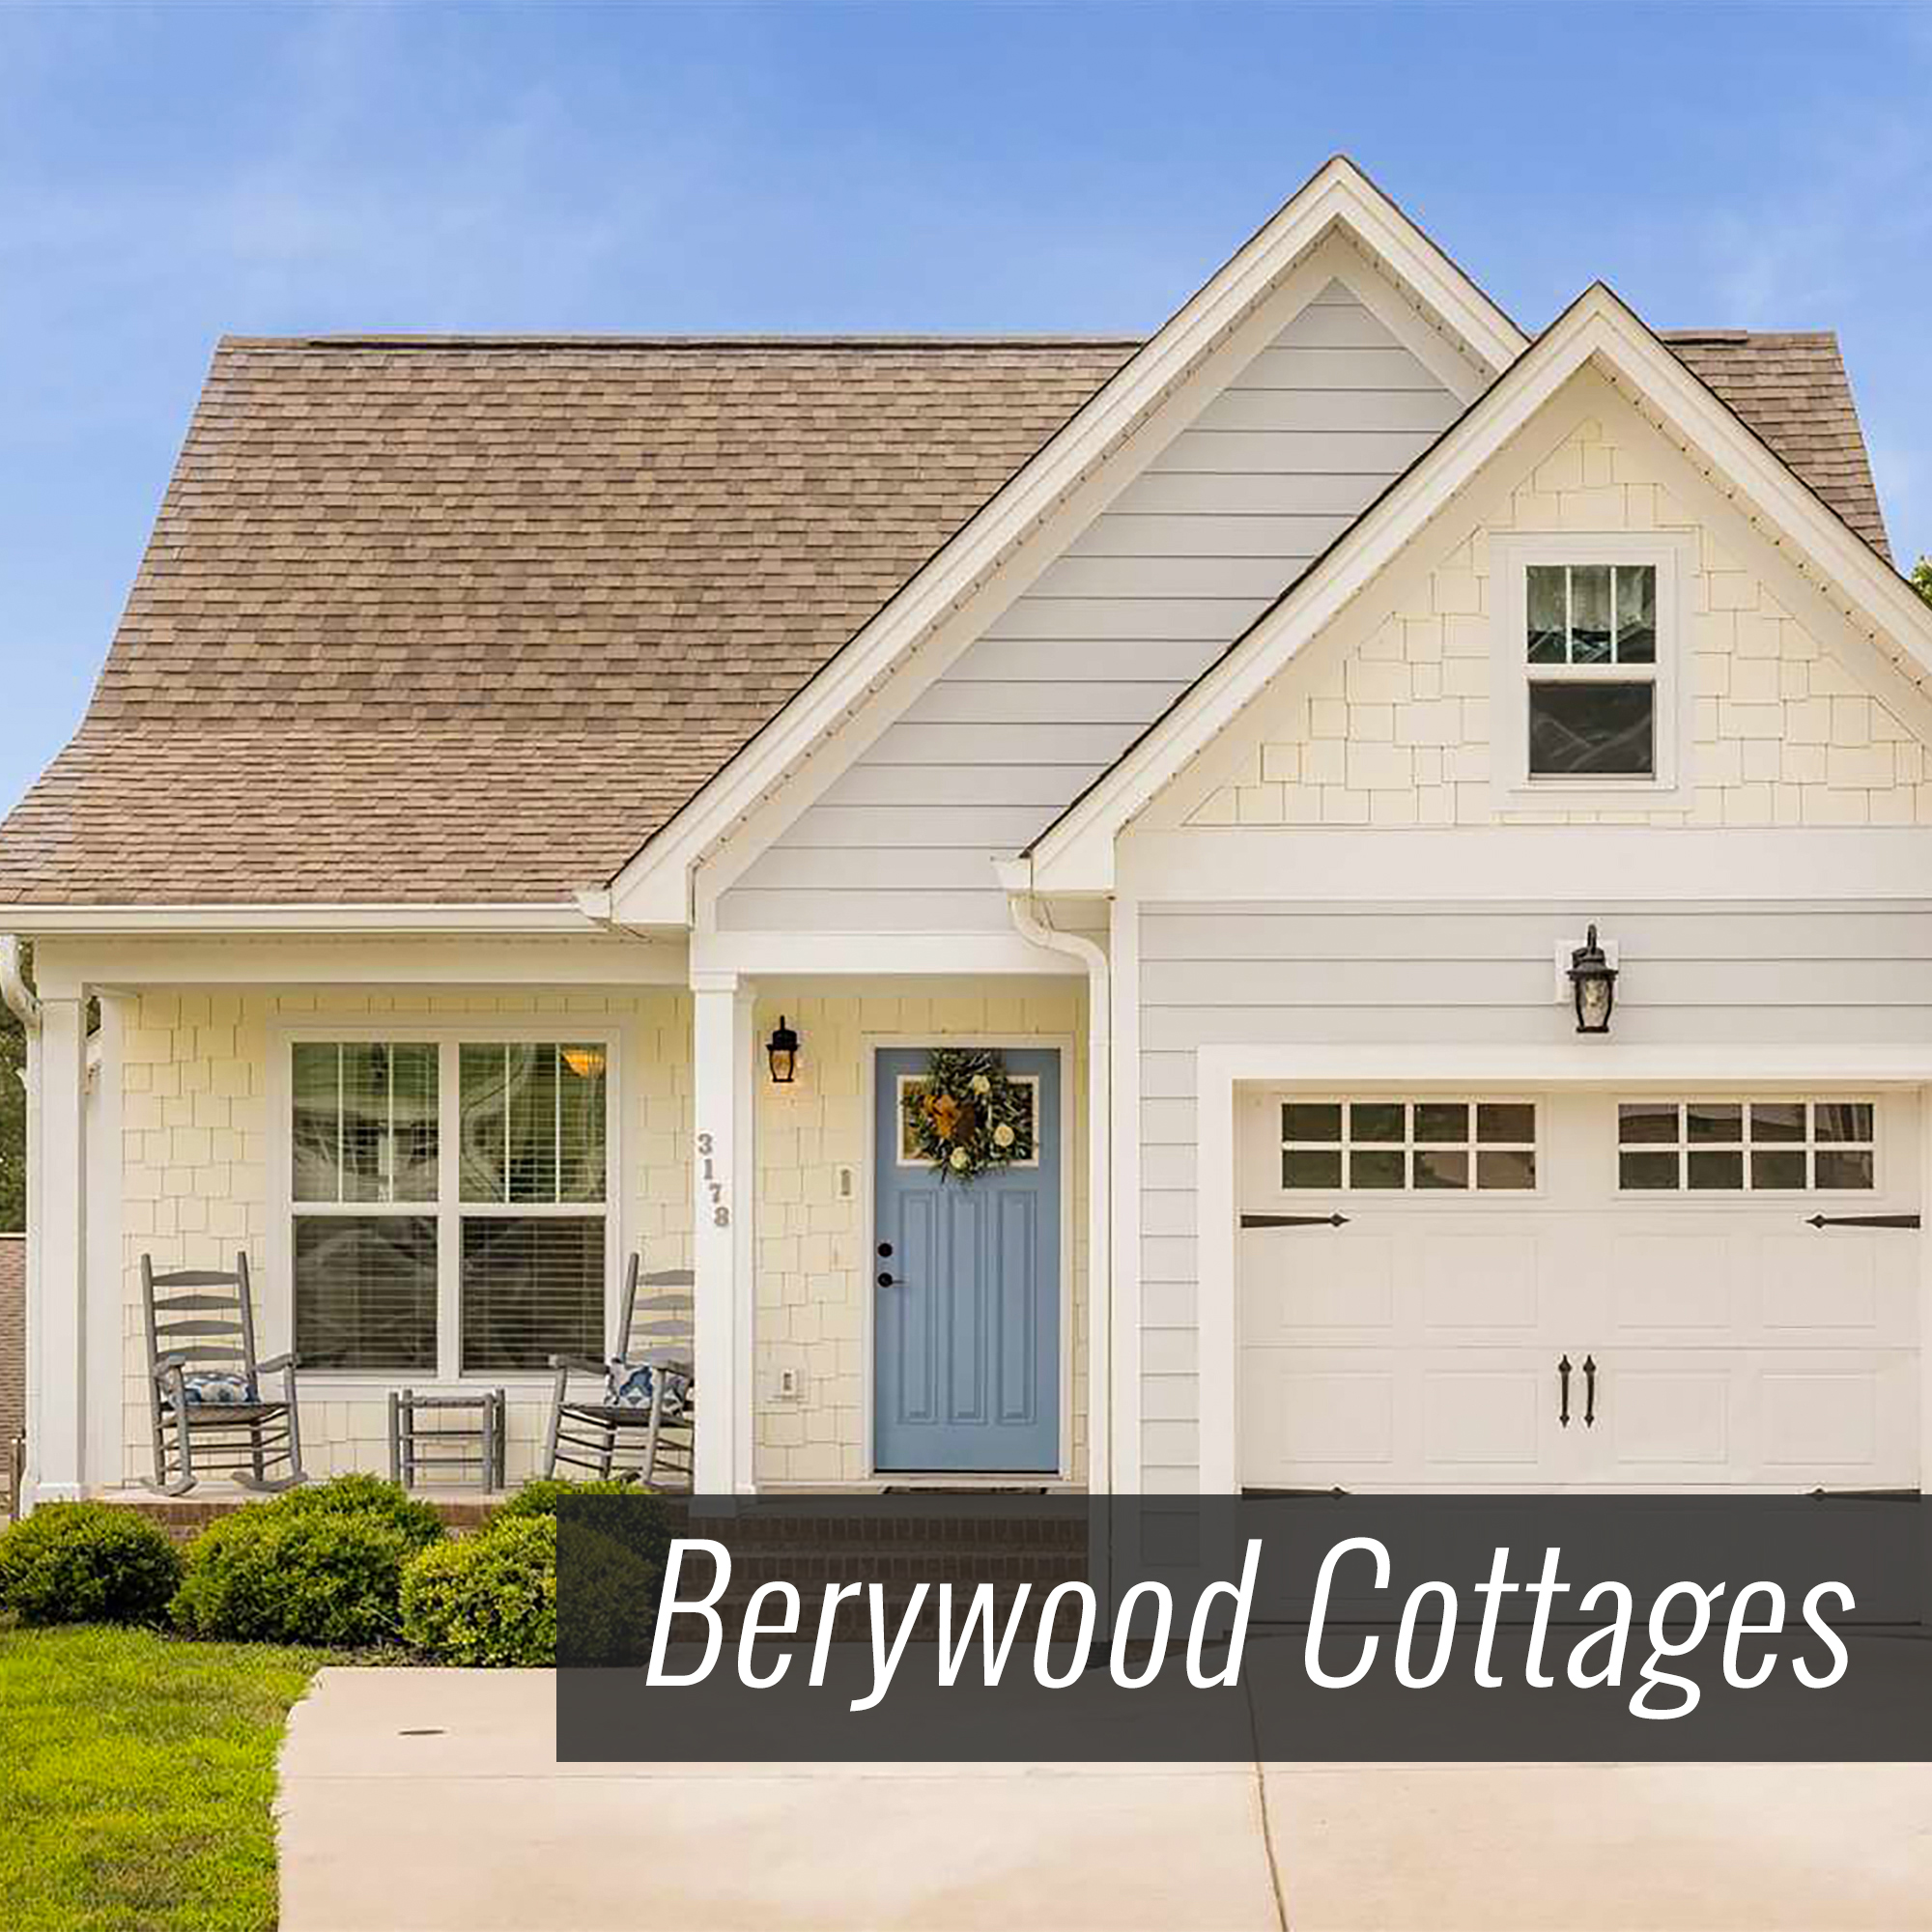 Homes for Sale in Berywood Cottages Subdivision